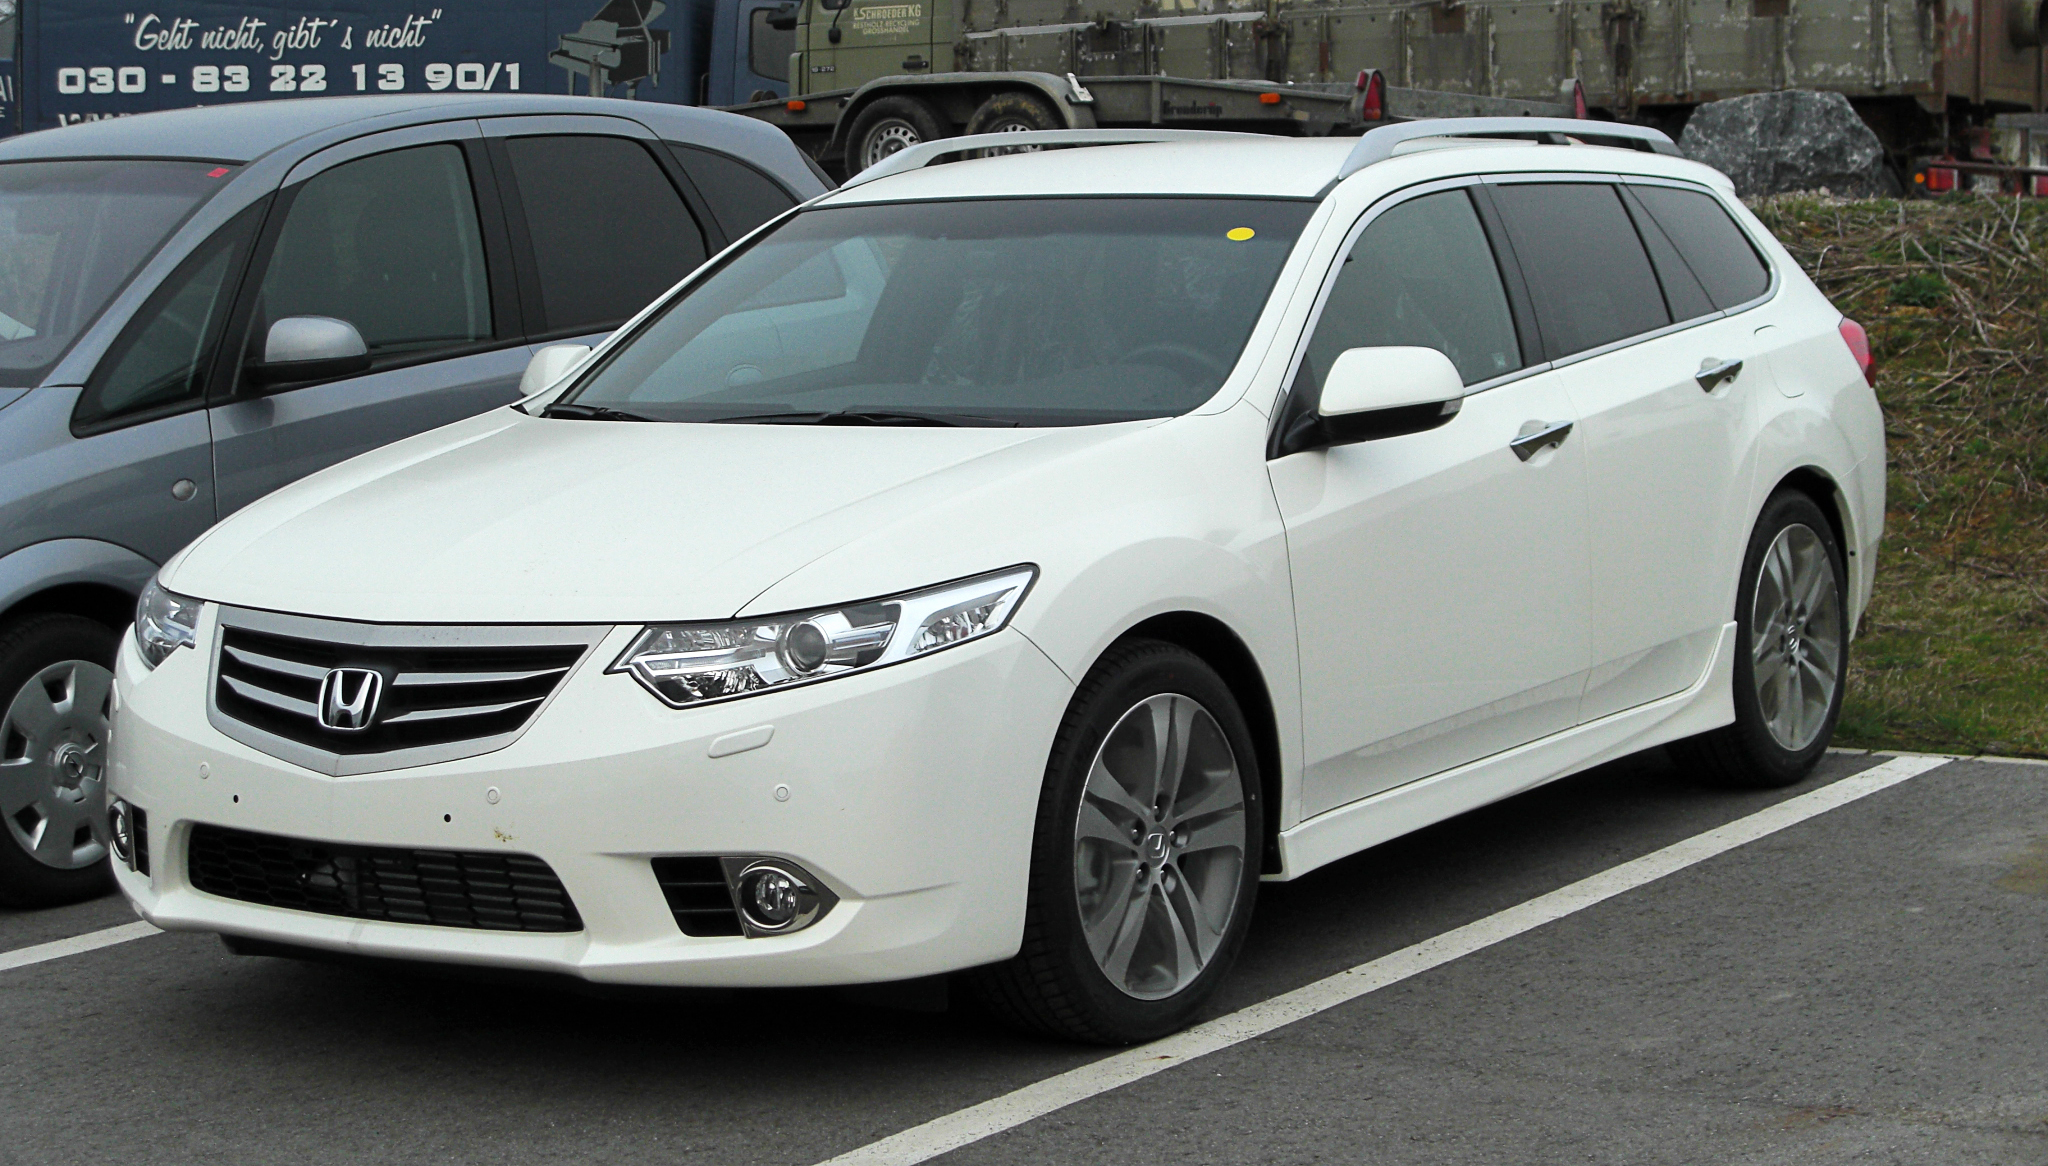 honda accord viii coupe 2011 pics